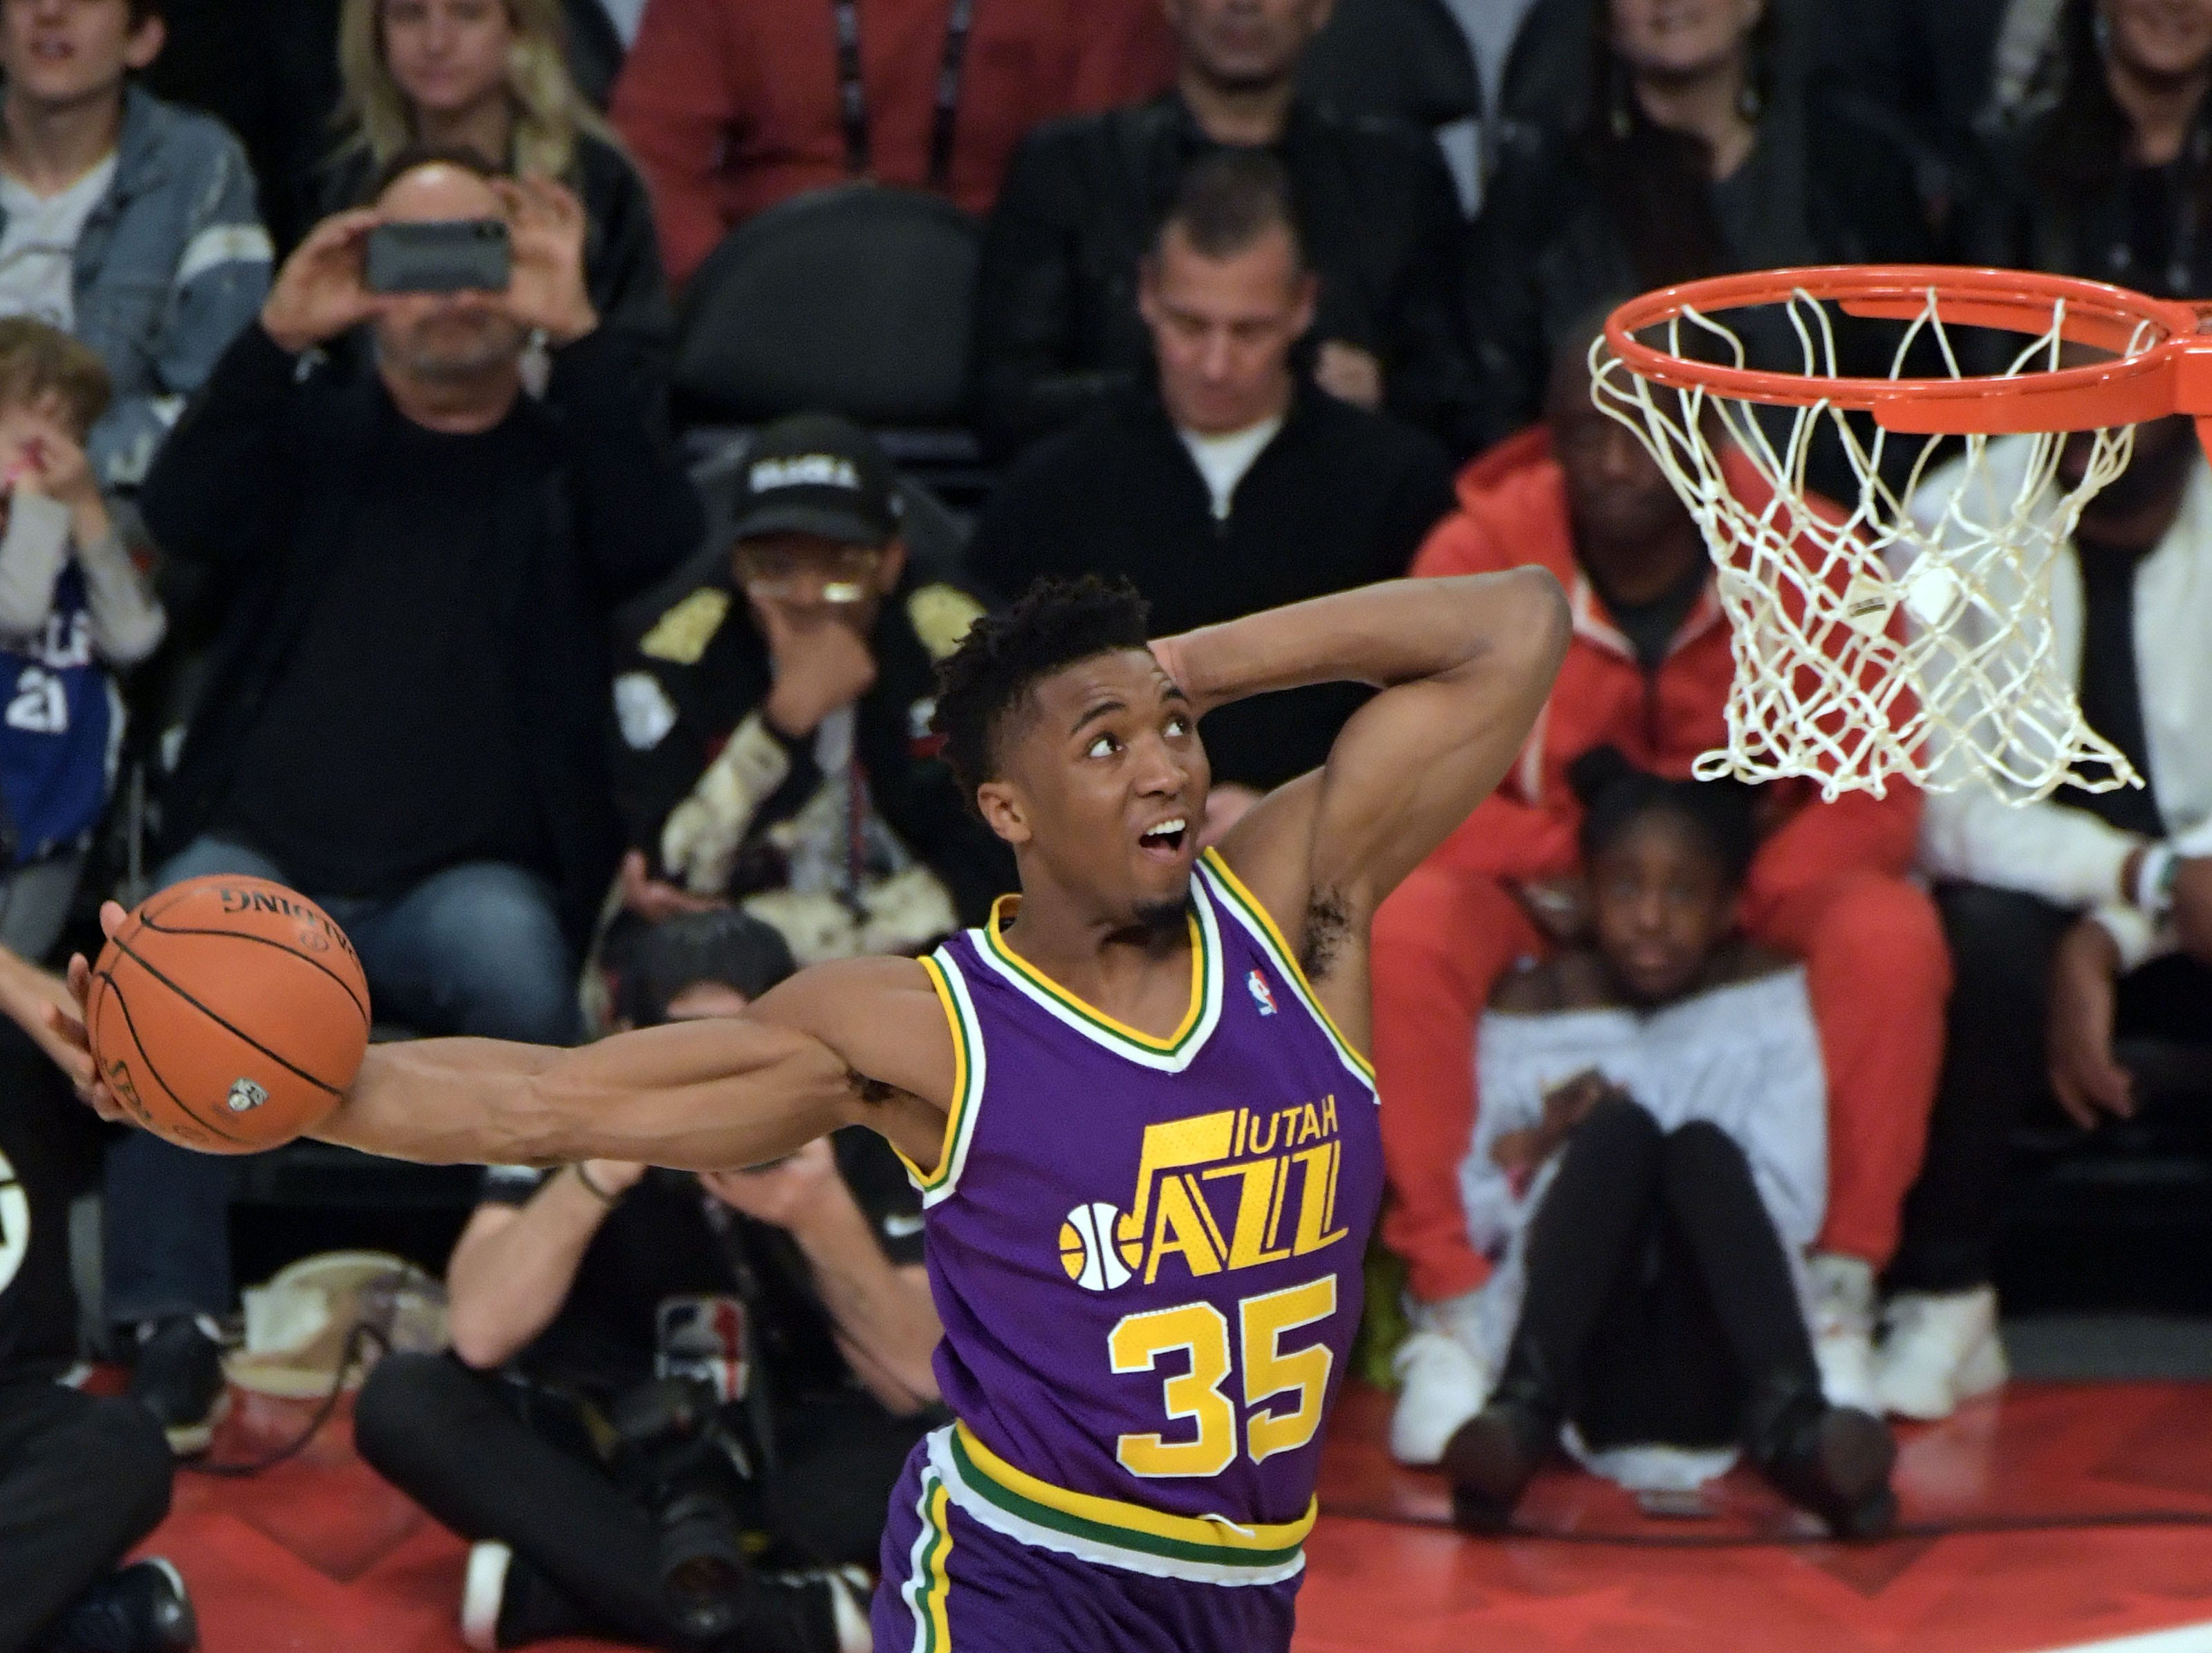 Feb. 17, 2018: Utah Jazz guard Donovan Mitchell shoots in the slam dunk contest in the 2018 All Star Saturday Night at Staples Center in Los Angeles.